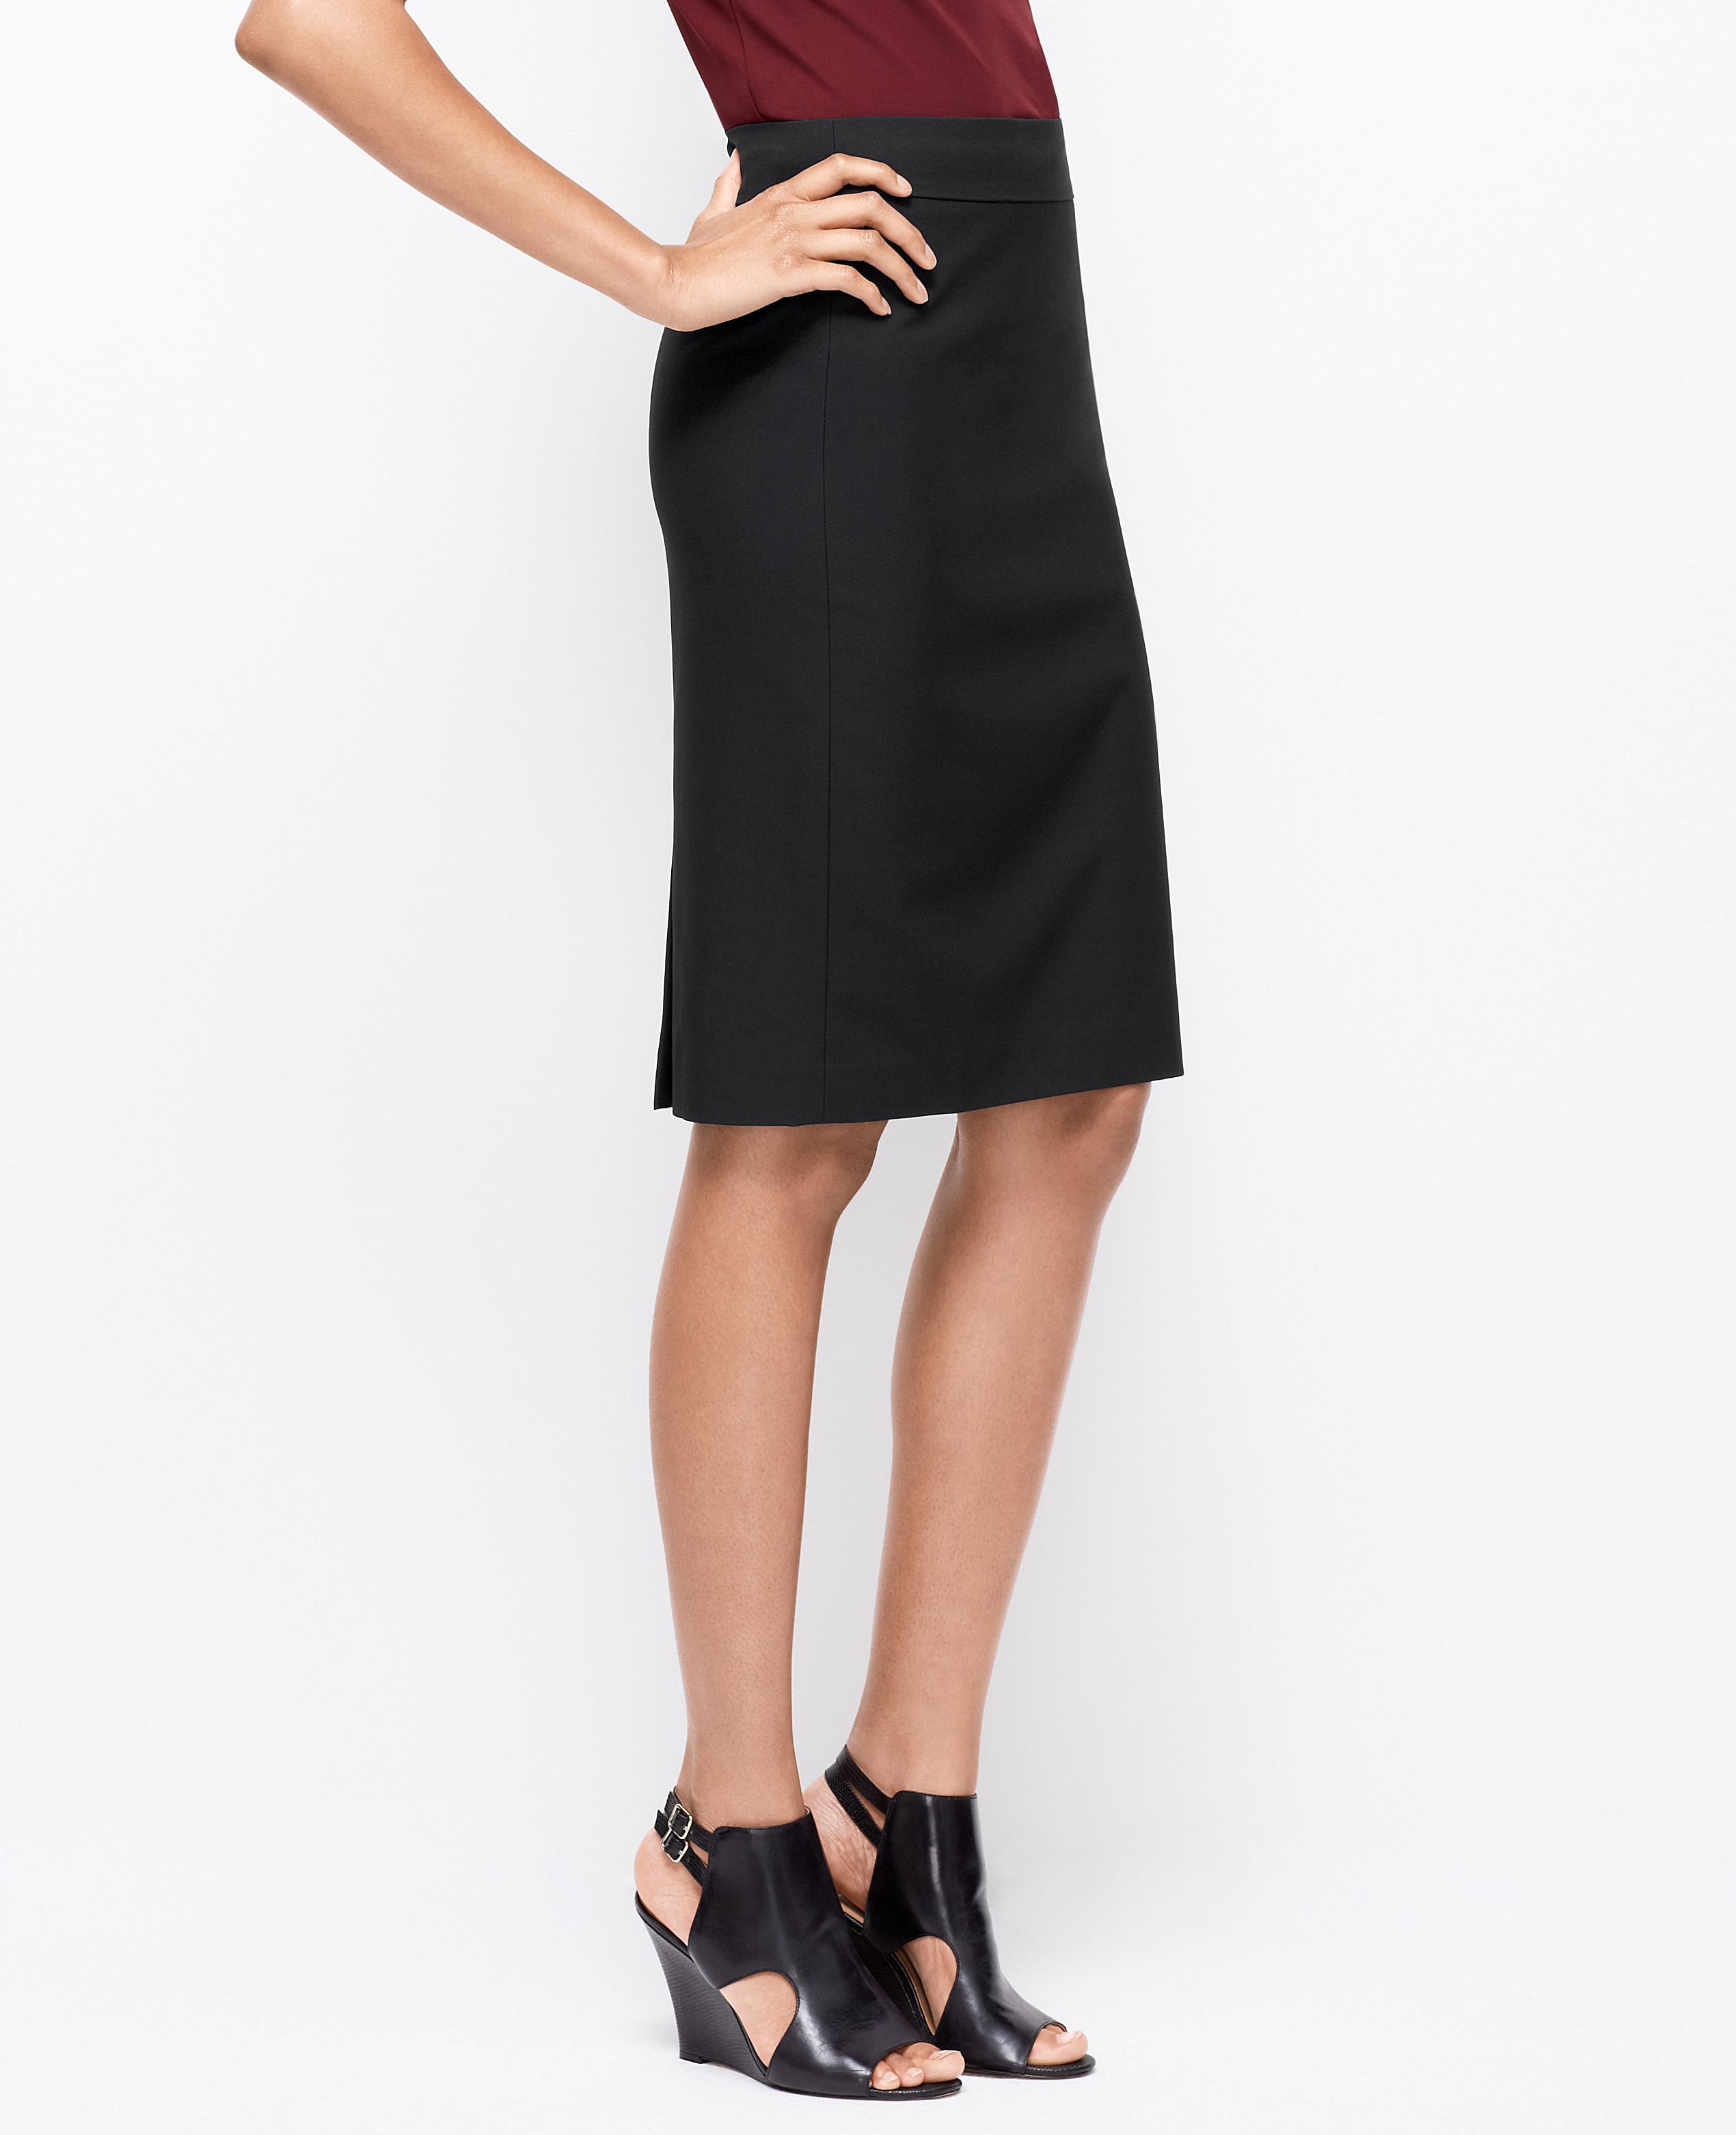 Ann taylor Petite All-season Stretch Pencil Skirt in Black | Lyst